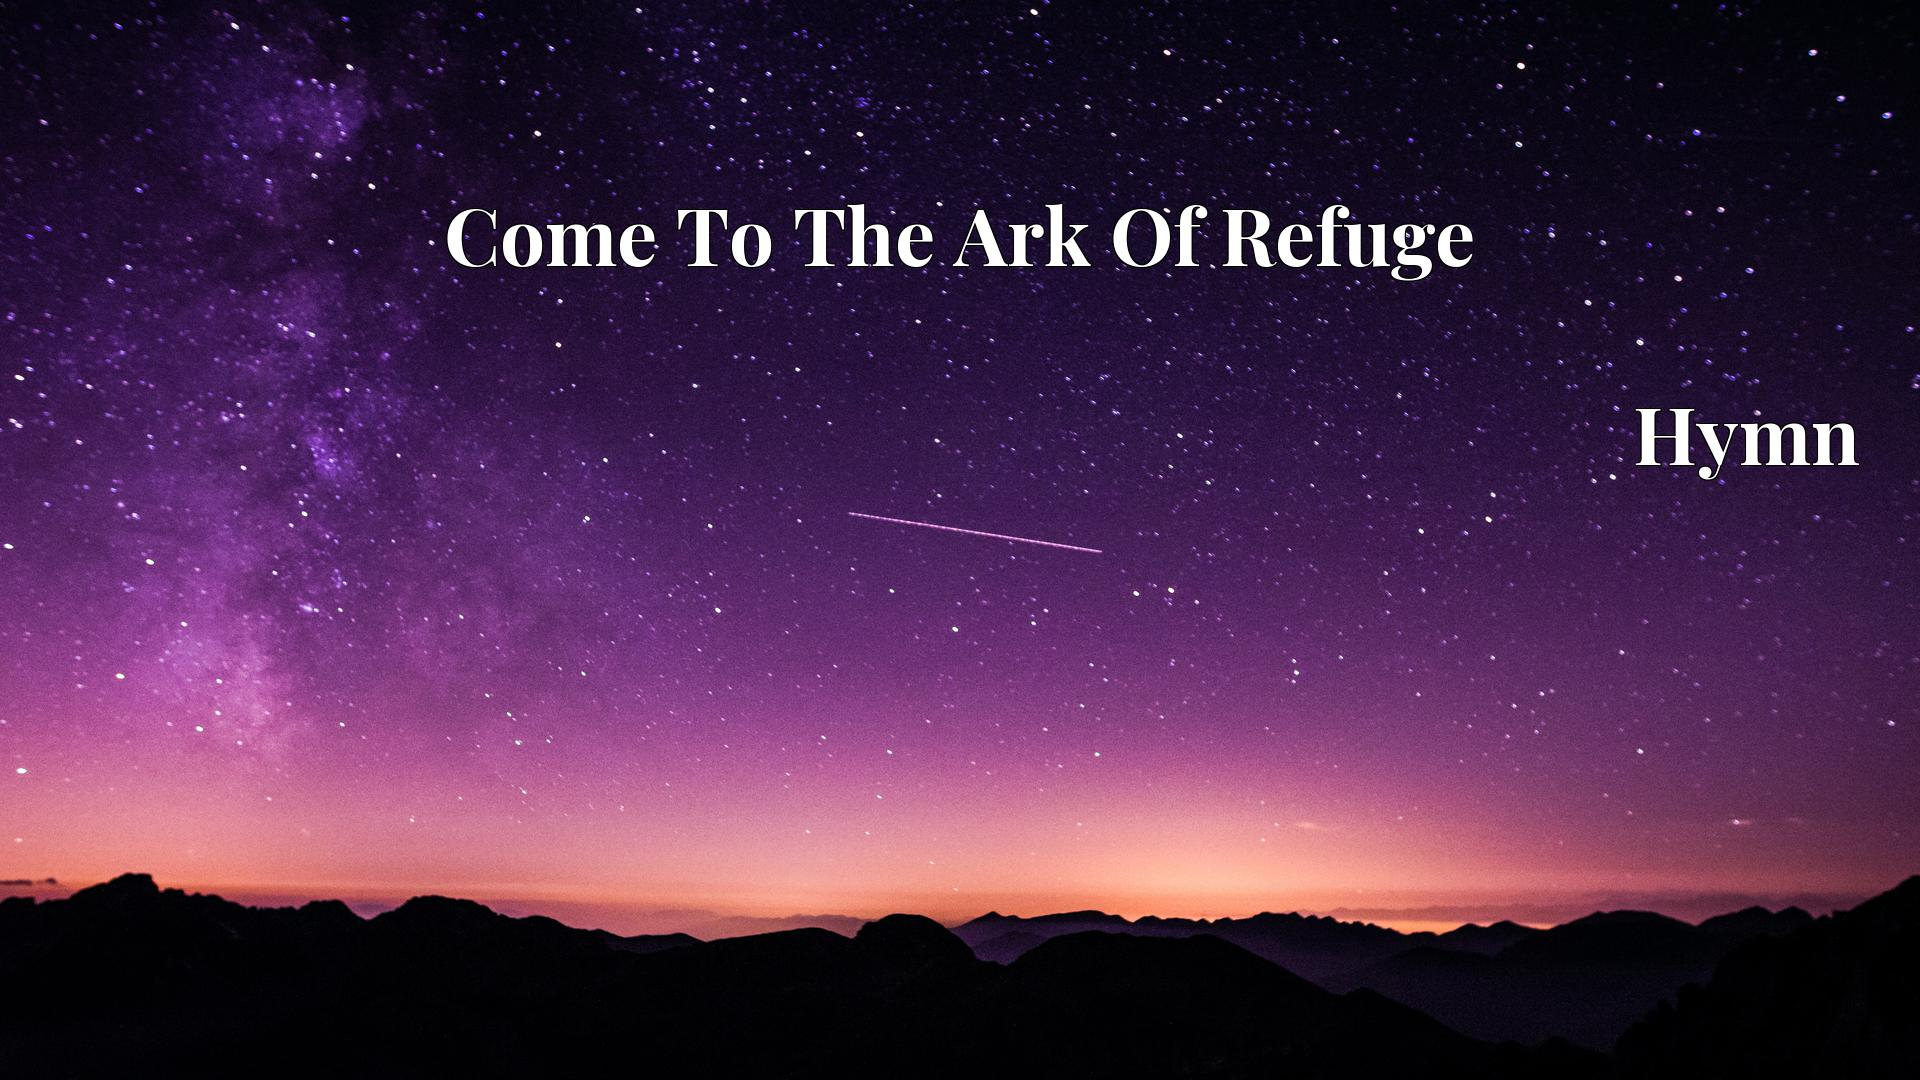 Come To The Ark Of Refuge - Hymn